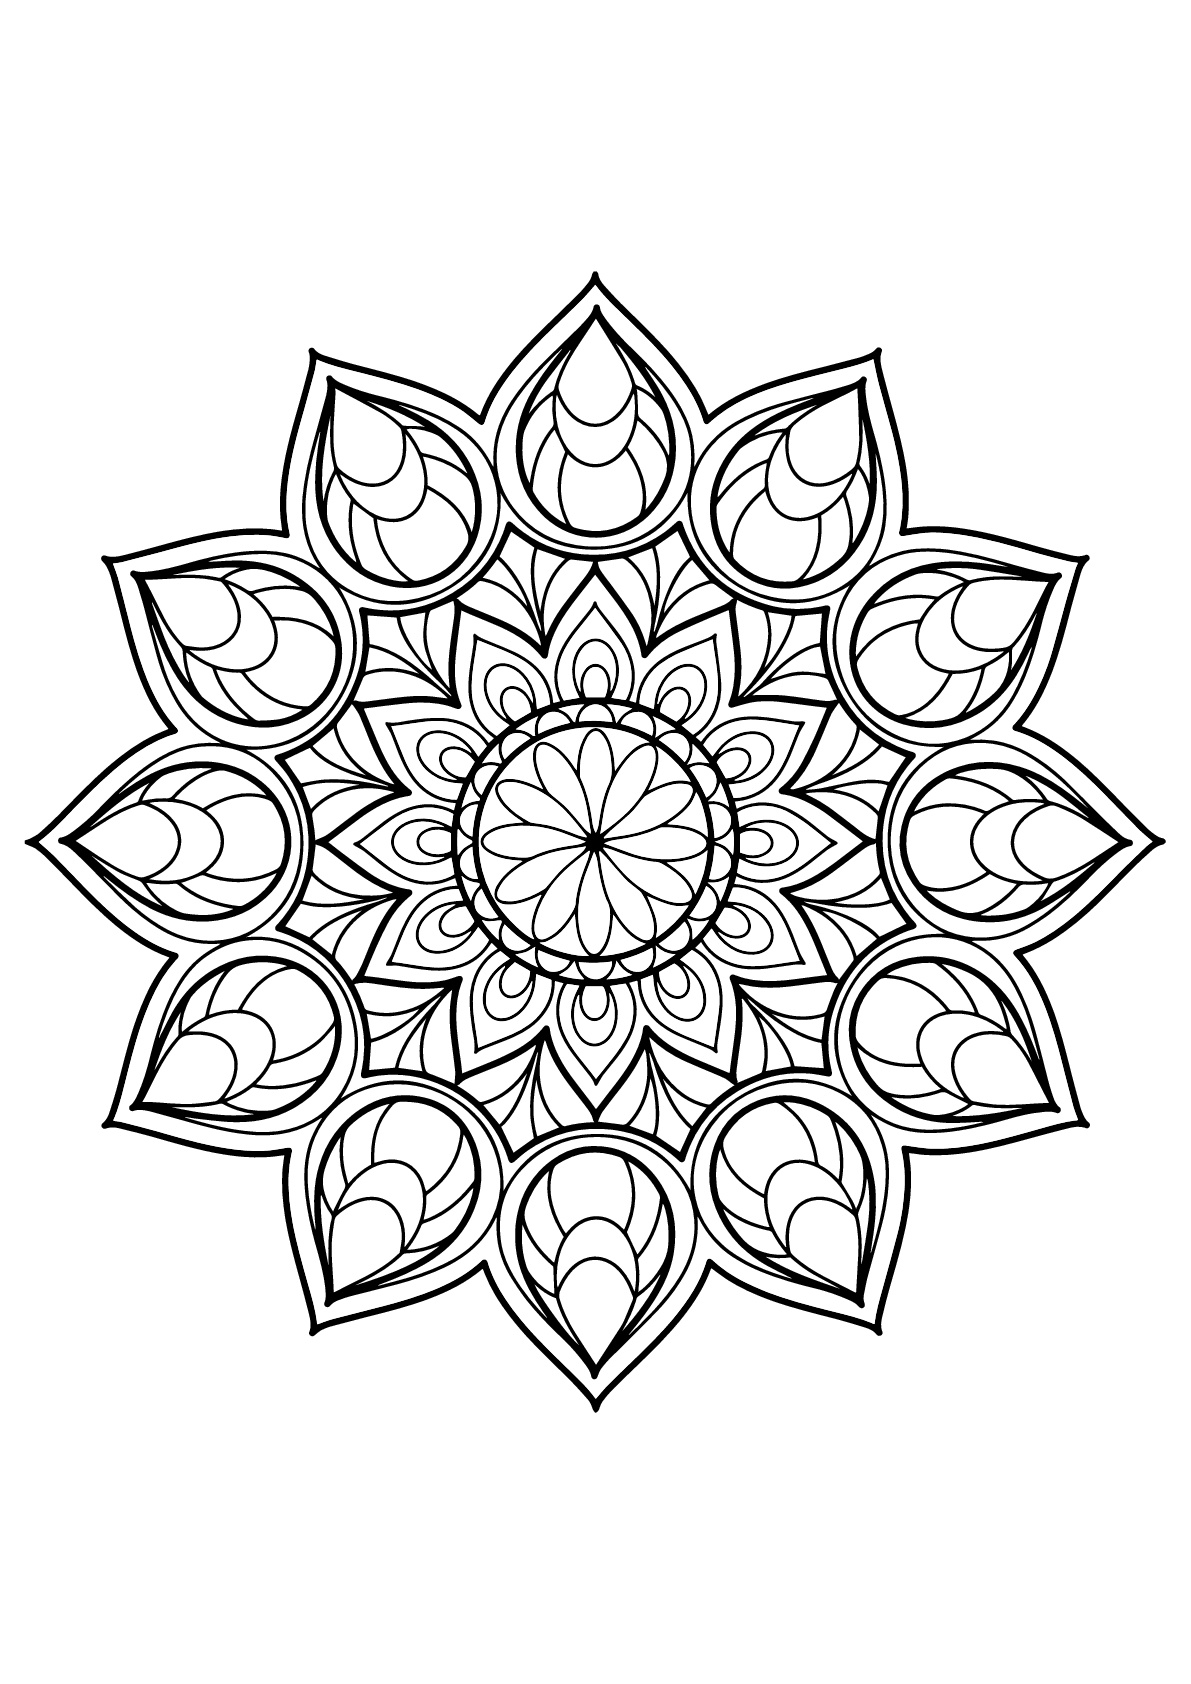 free mandala coloring pages for kids free printable mandalas for kids  best coloring pages for coloring free mandala pages kids for